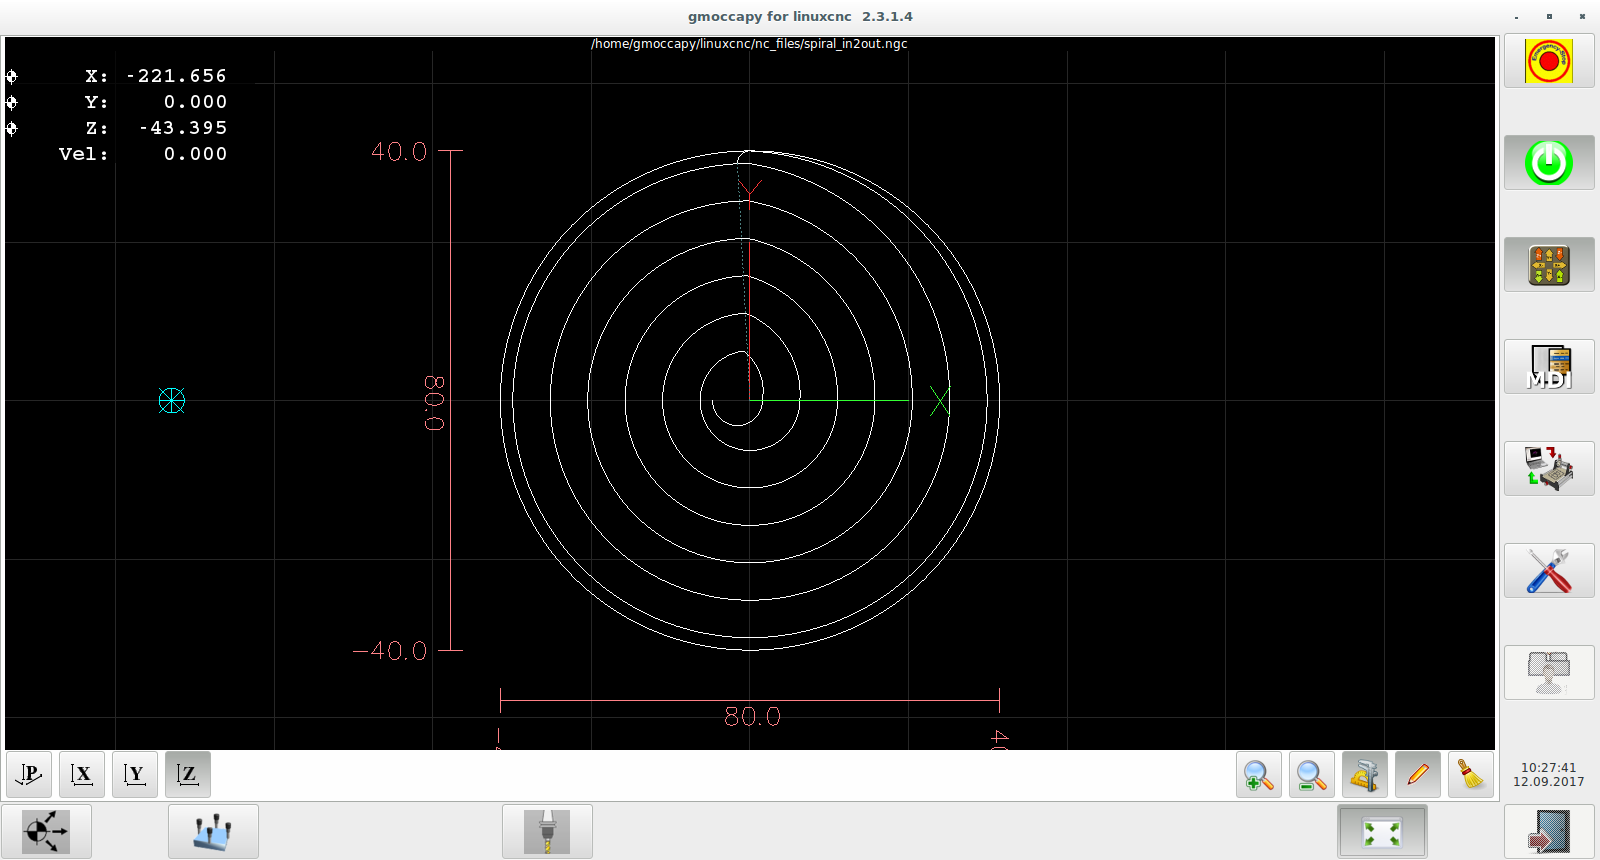 Spiral_from12005to88mmwith12mmmill.jpg